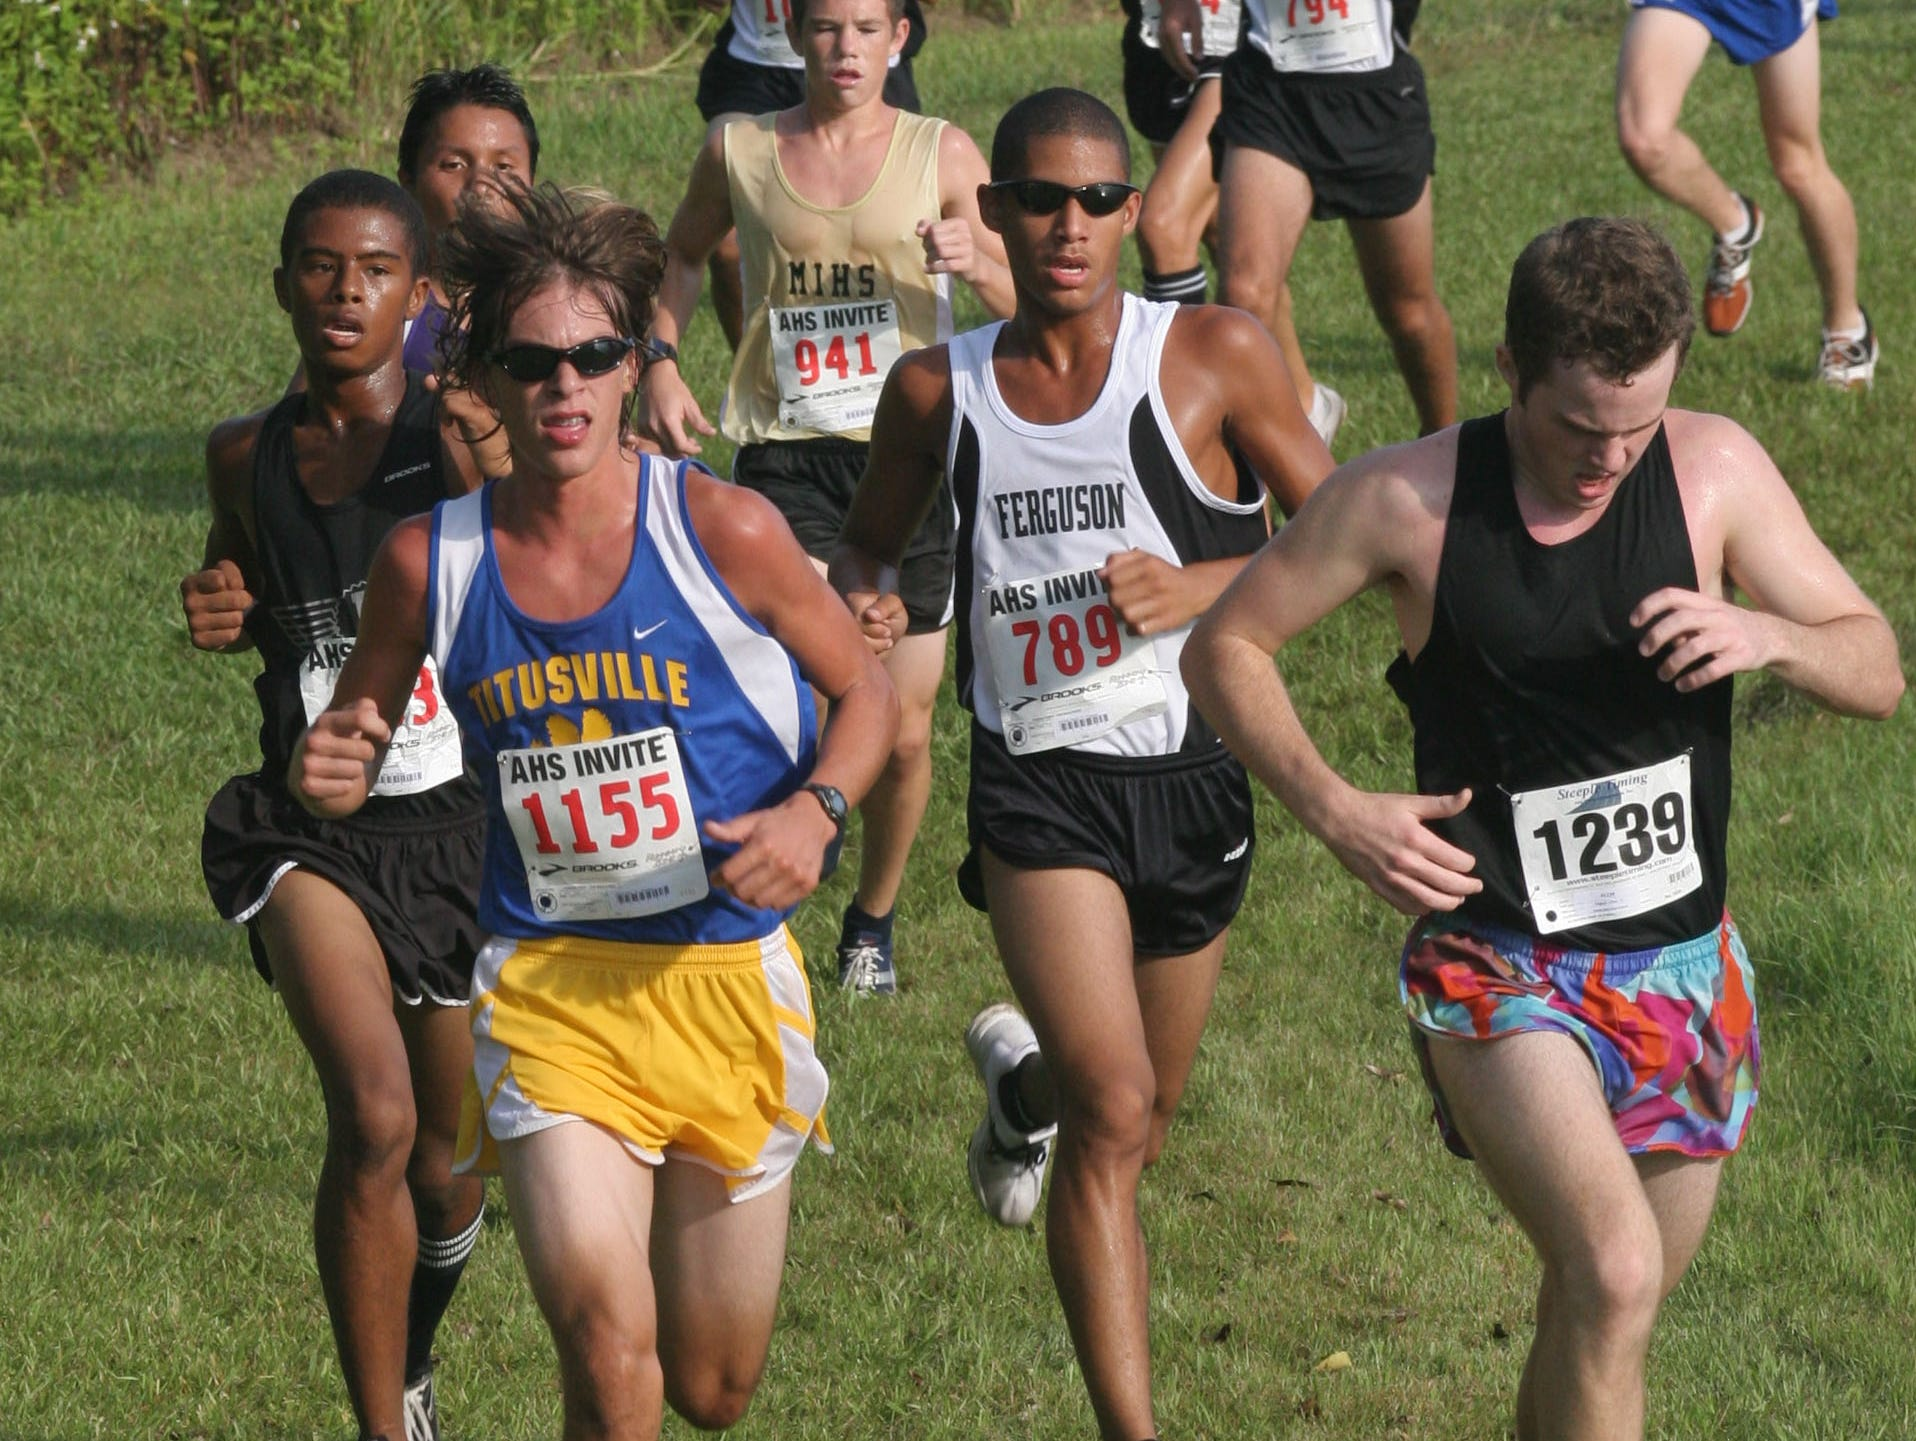 The Astronaut Invitational brings schools from all over Central Florida to Titusville,